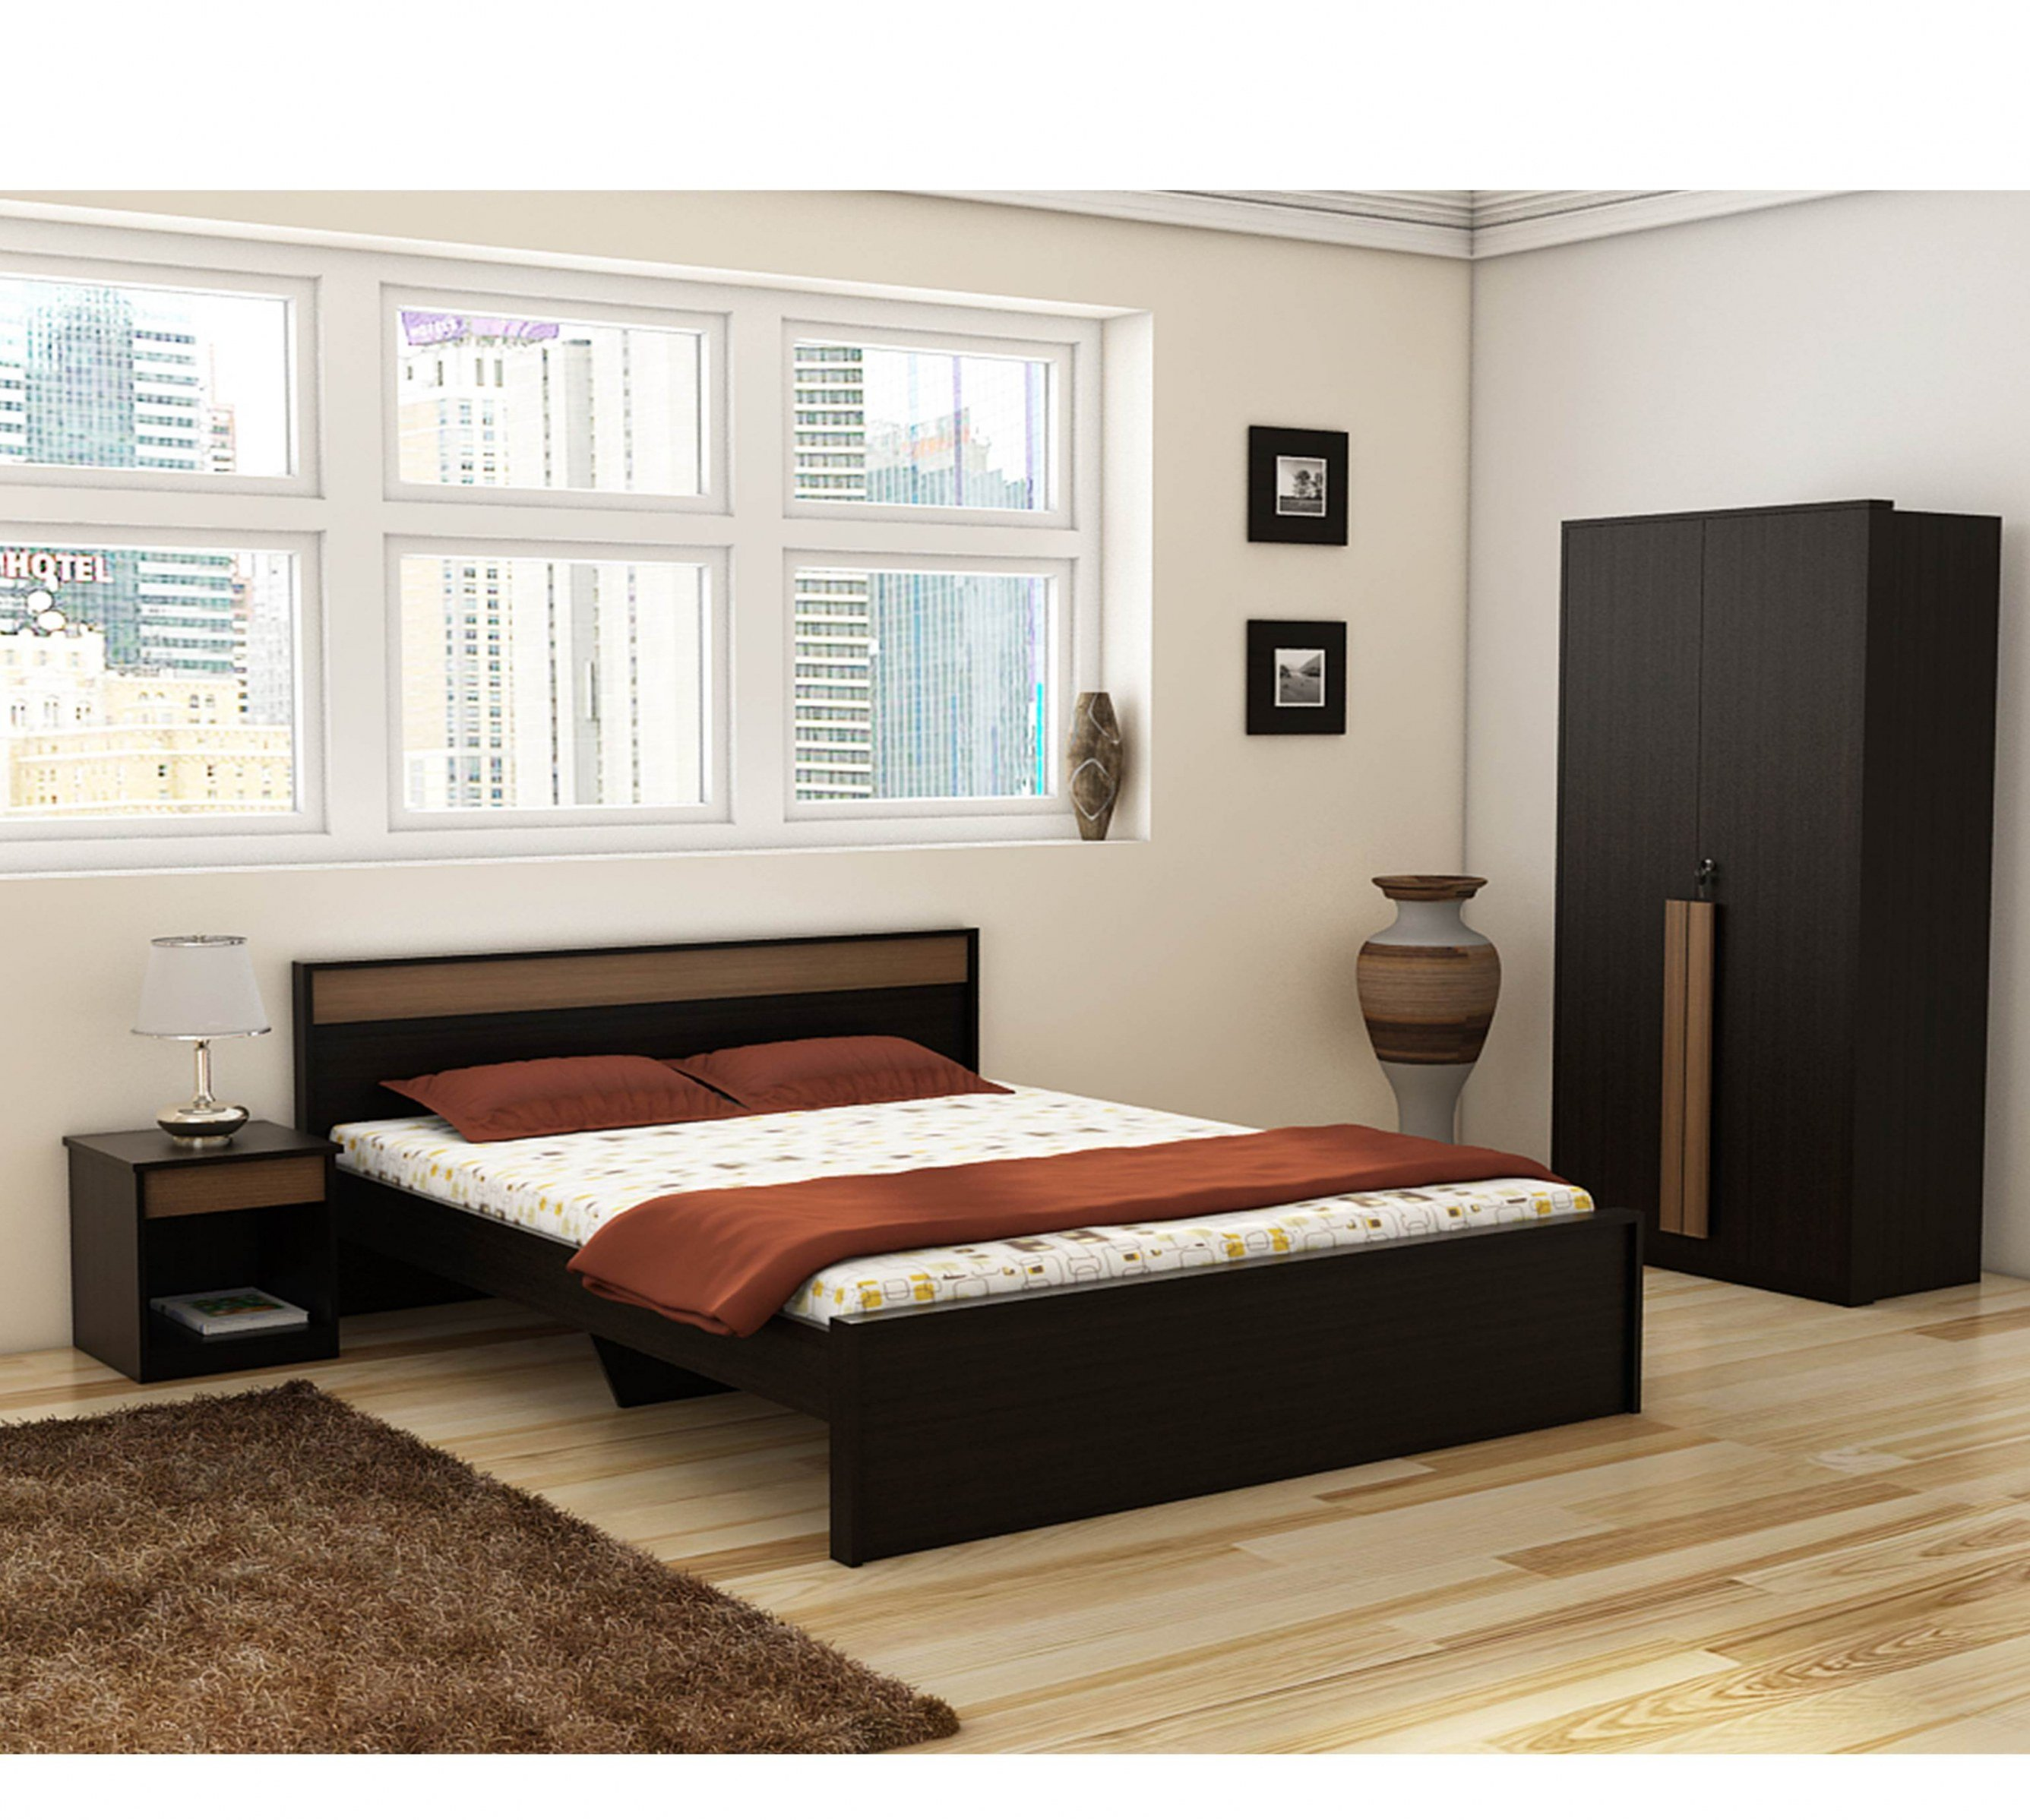 White Bedroom Furniture Set Fresh Low Beds Ikea White Bedroom Furniture Sets Ikea White Hemnes